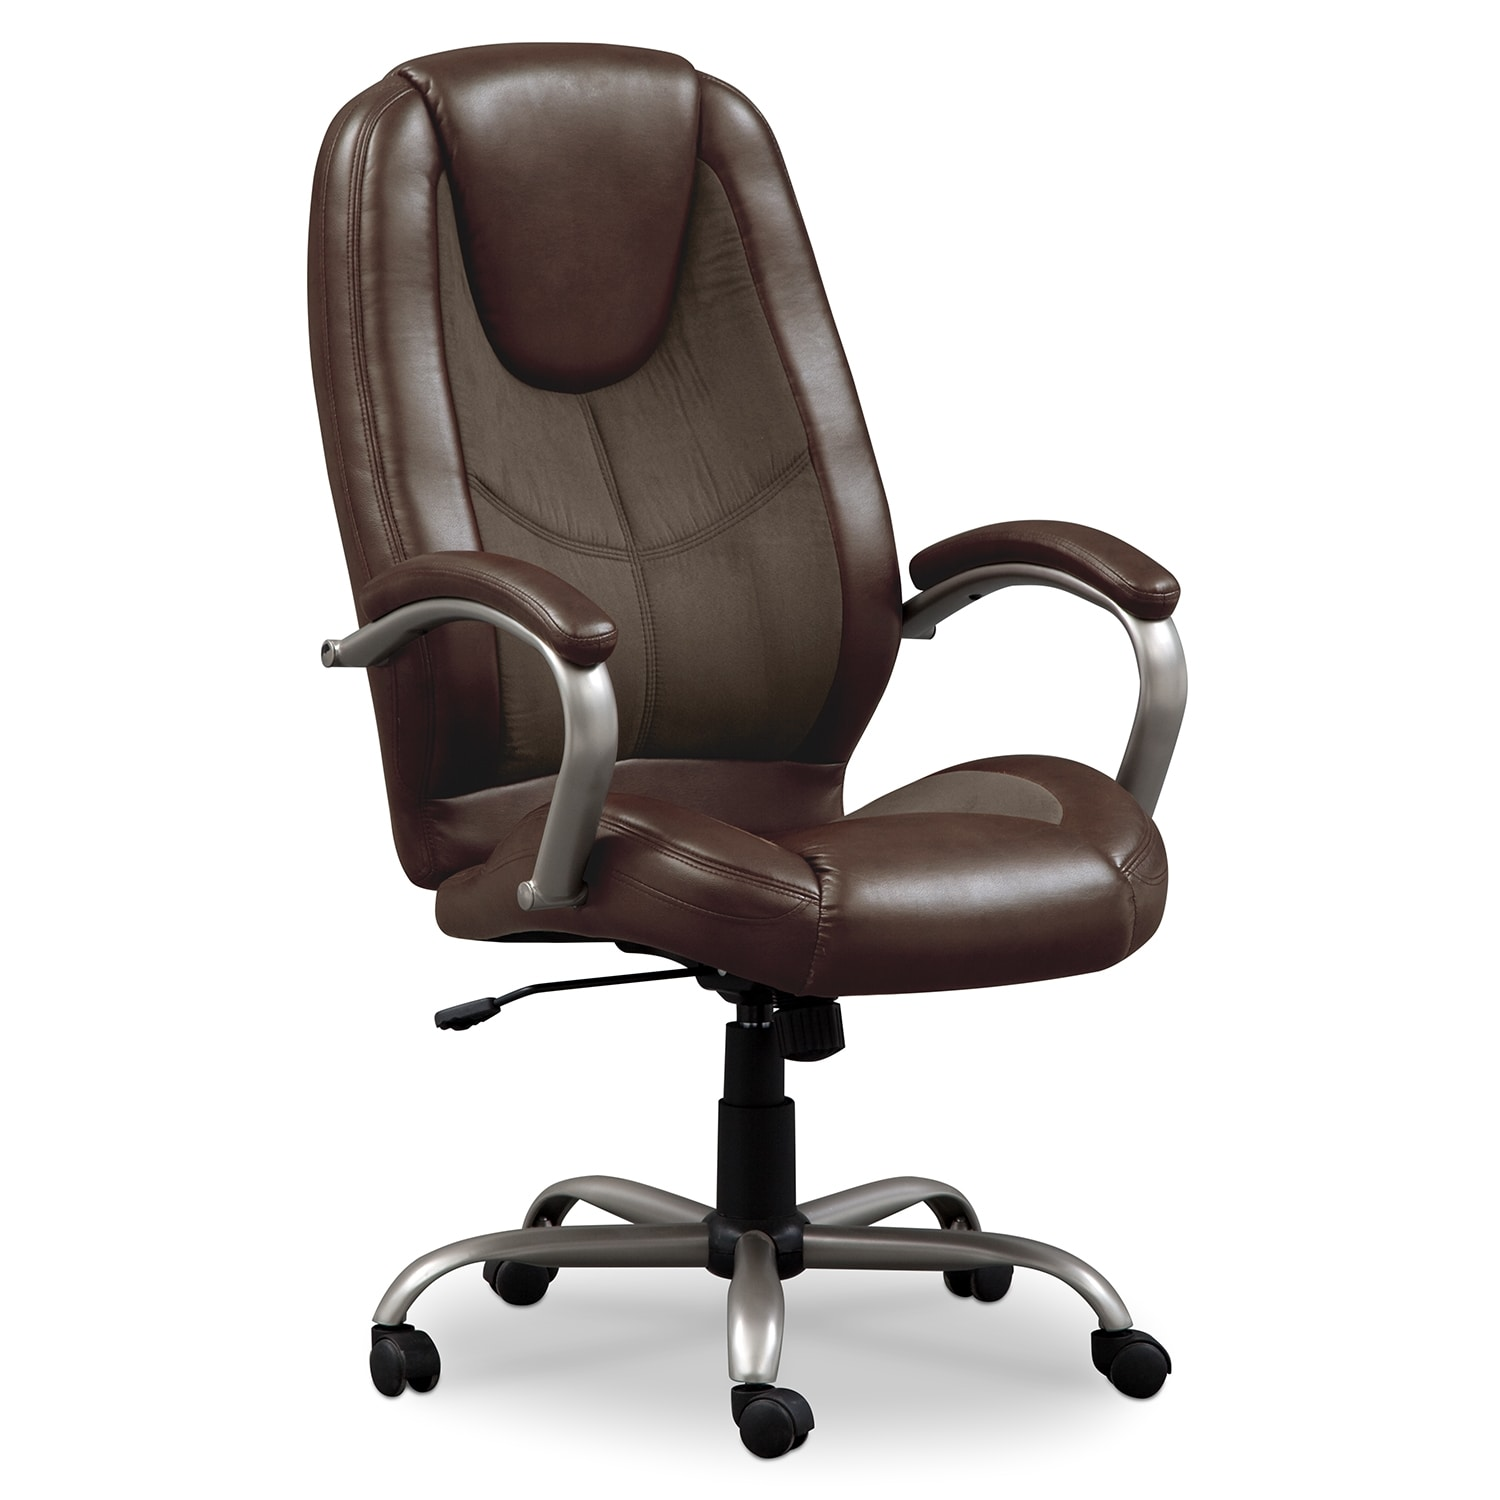 Home Office Furniture - Viper Executive Chair